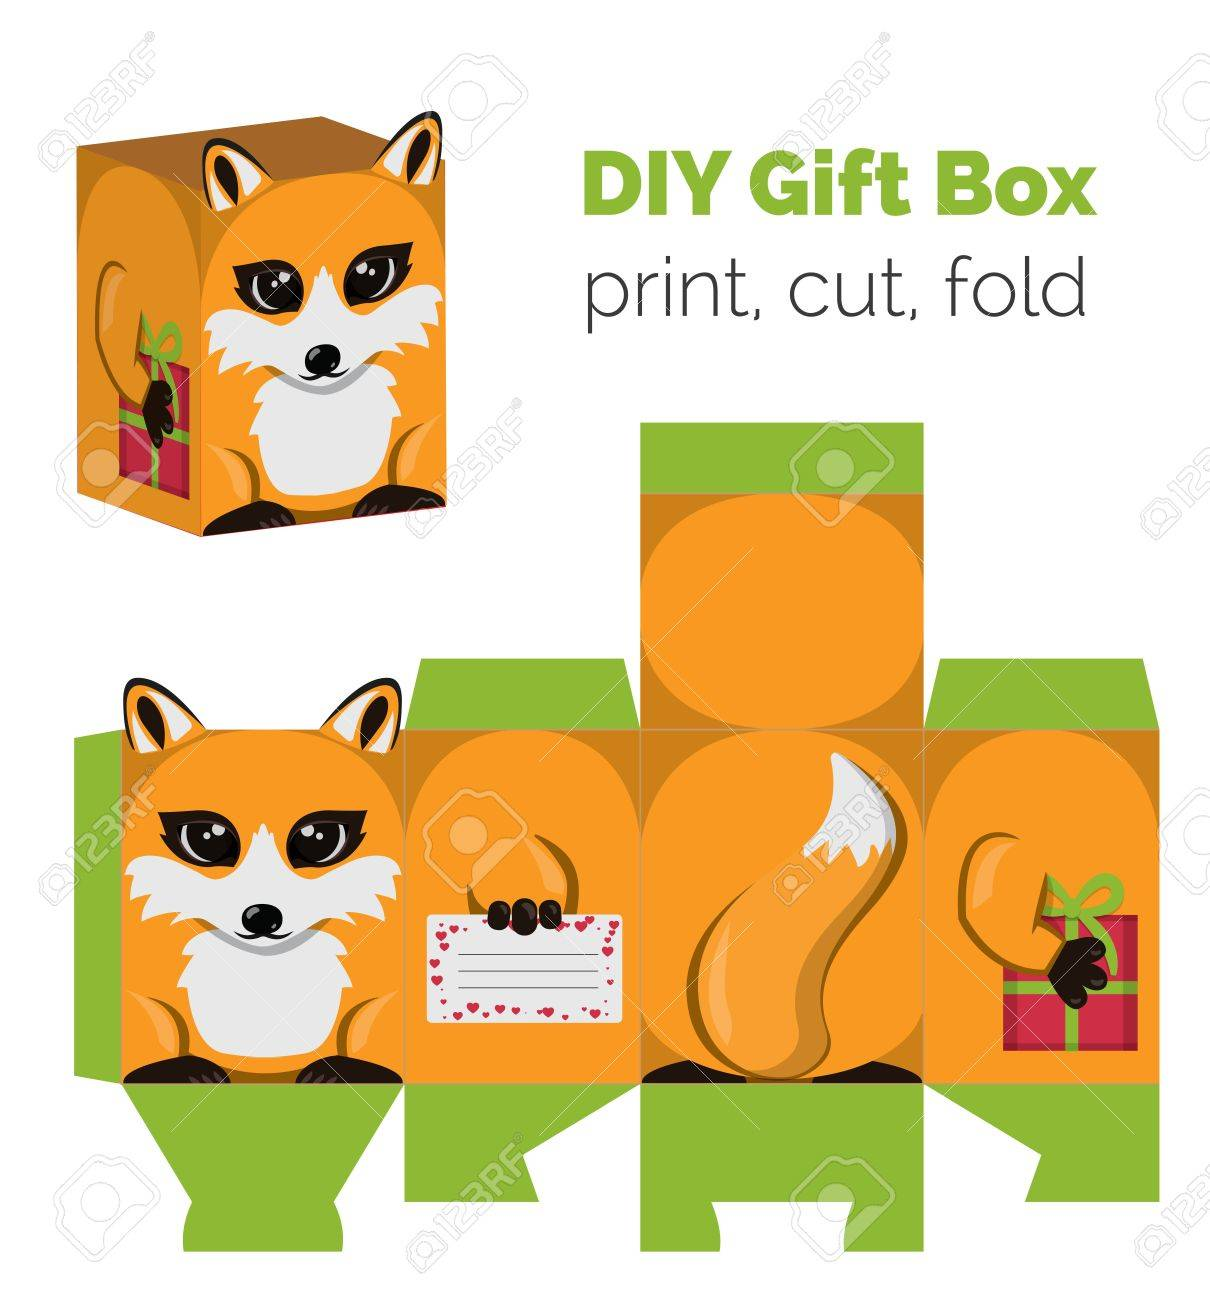 Adorable Do It Yourself DIY fox gift box with ears for sweets, candies, small presents. Printable color scheme. Print it on thick paper, cut out, fold according to the lines. - 52253733